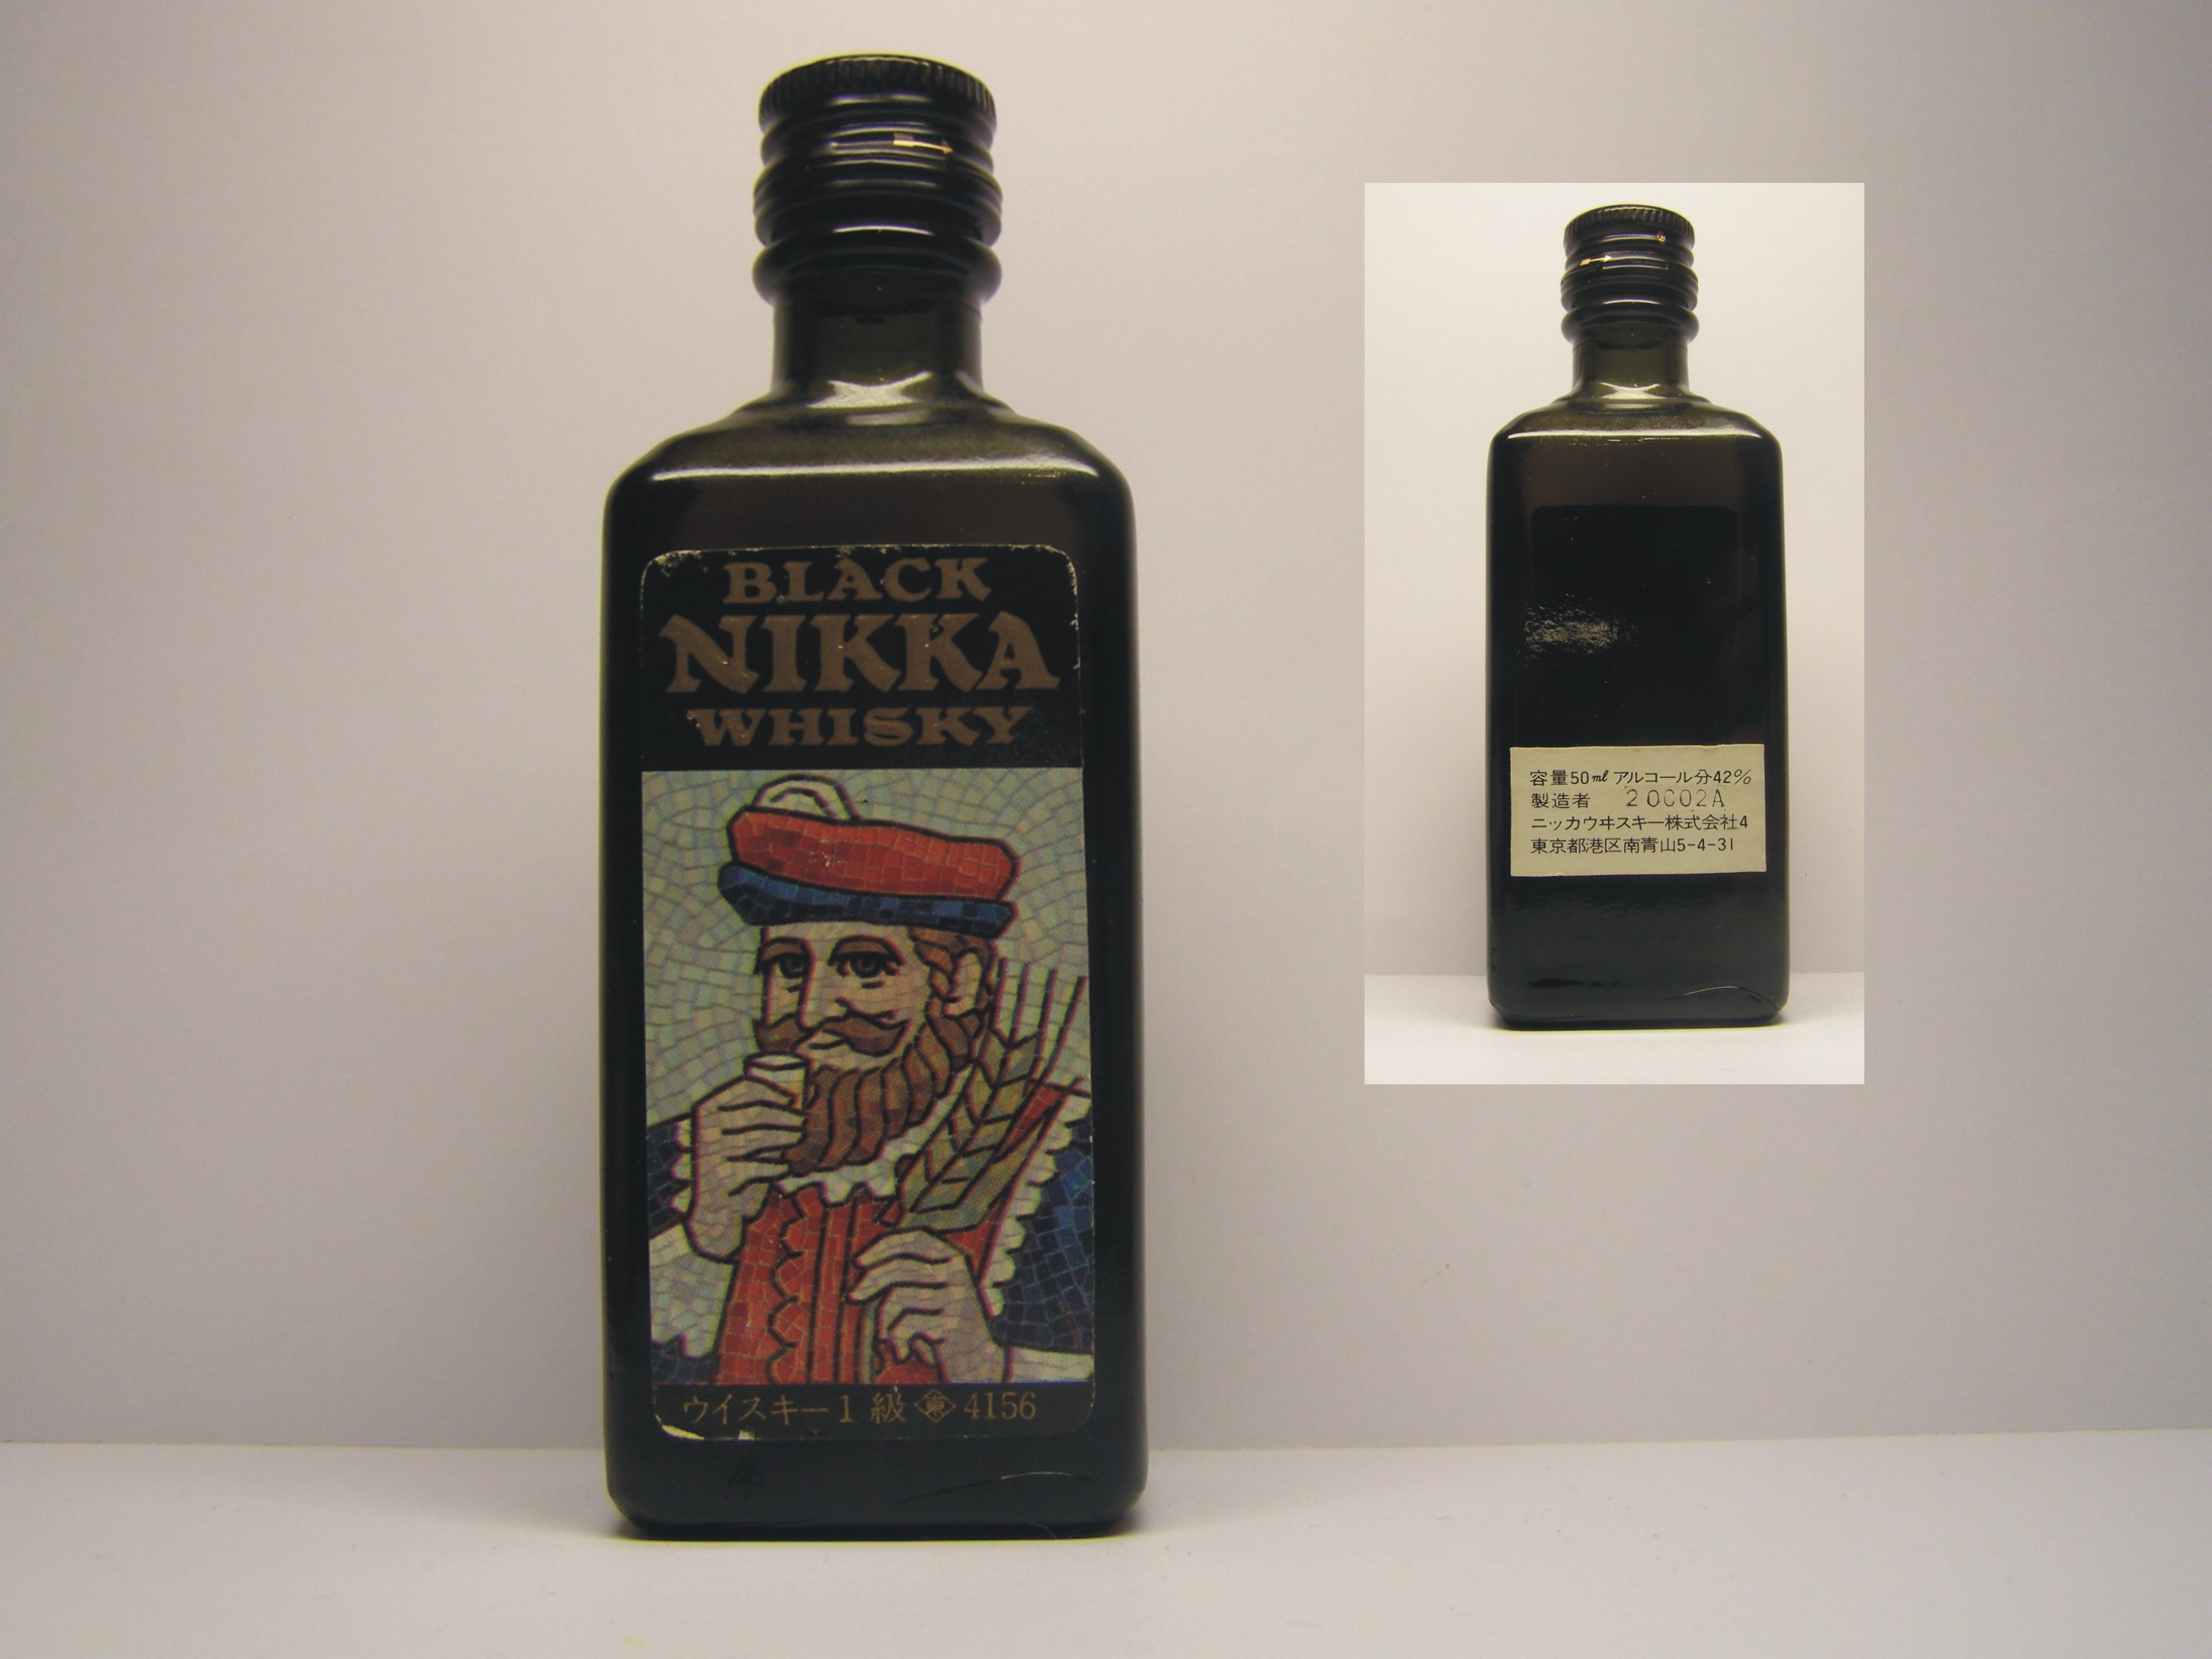 BLACK NIKKA Whisky